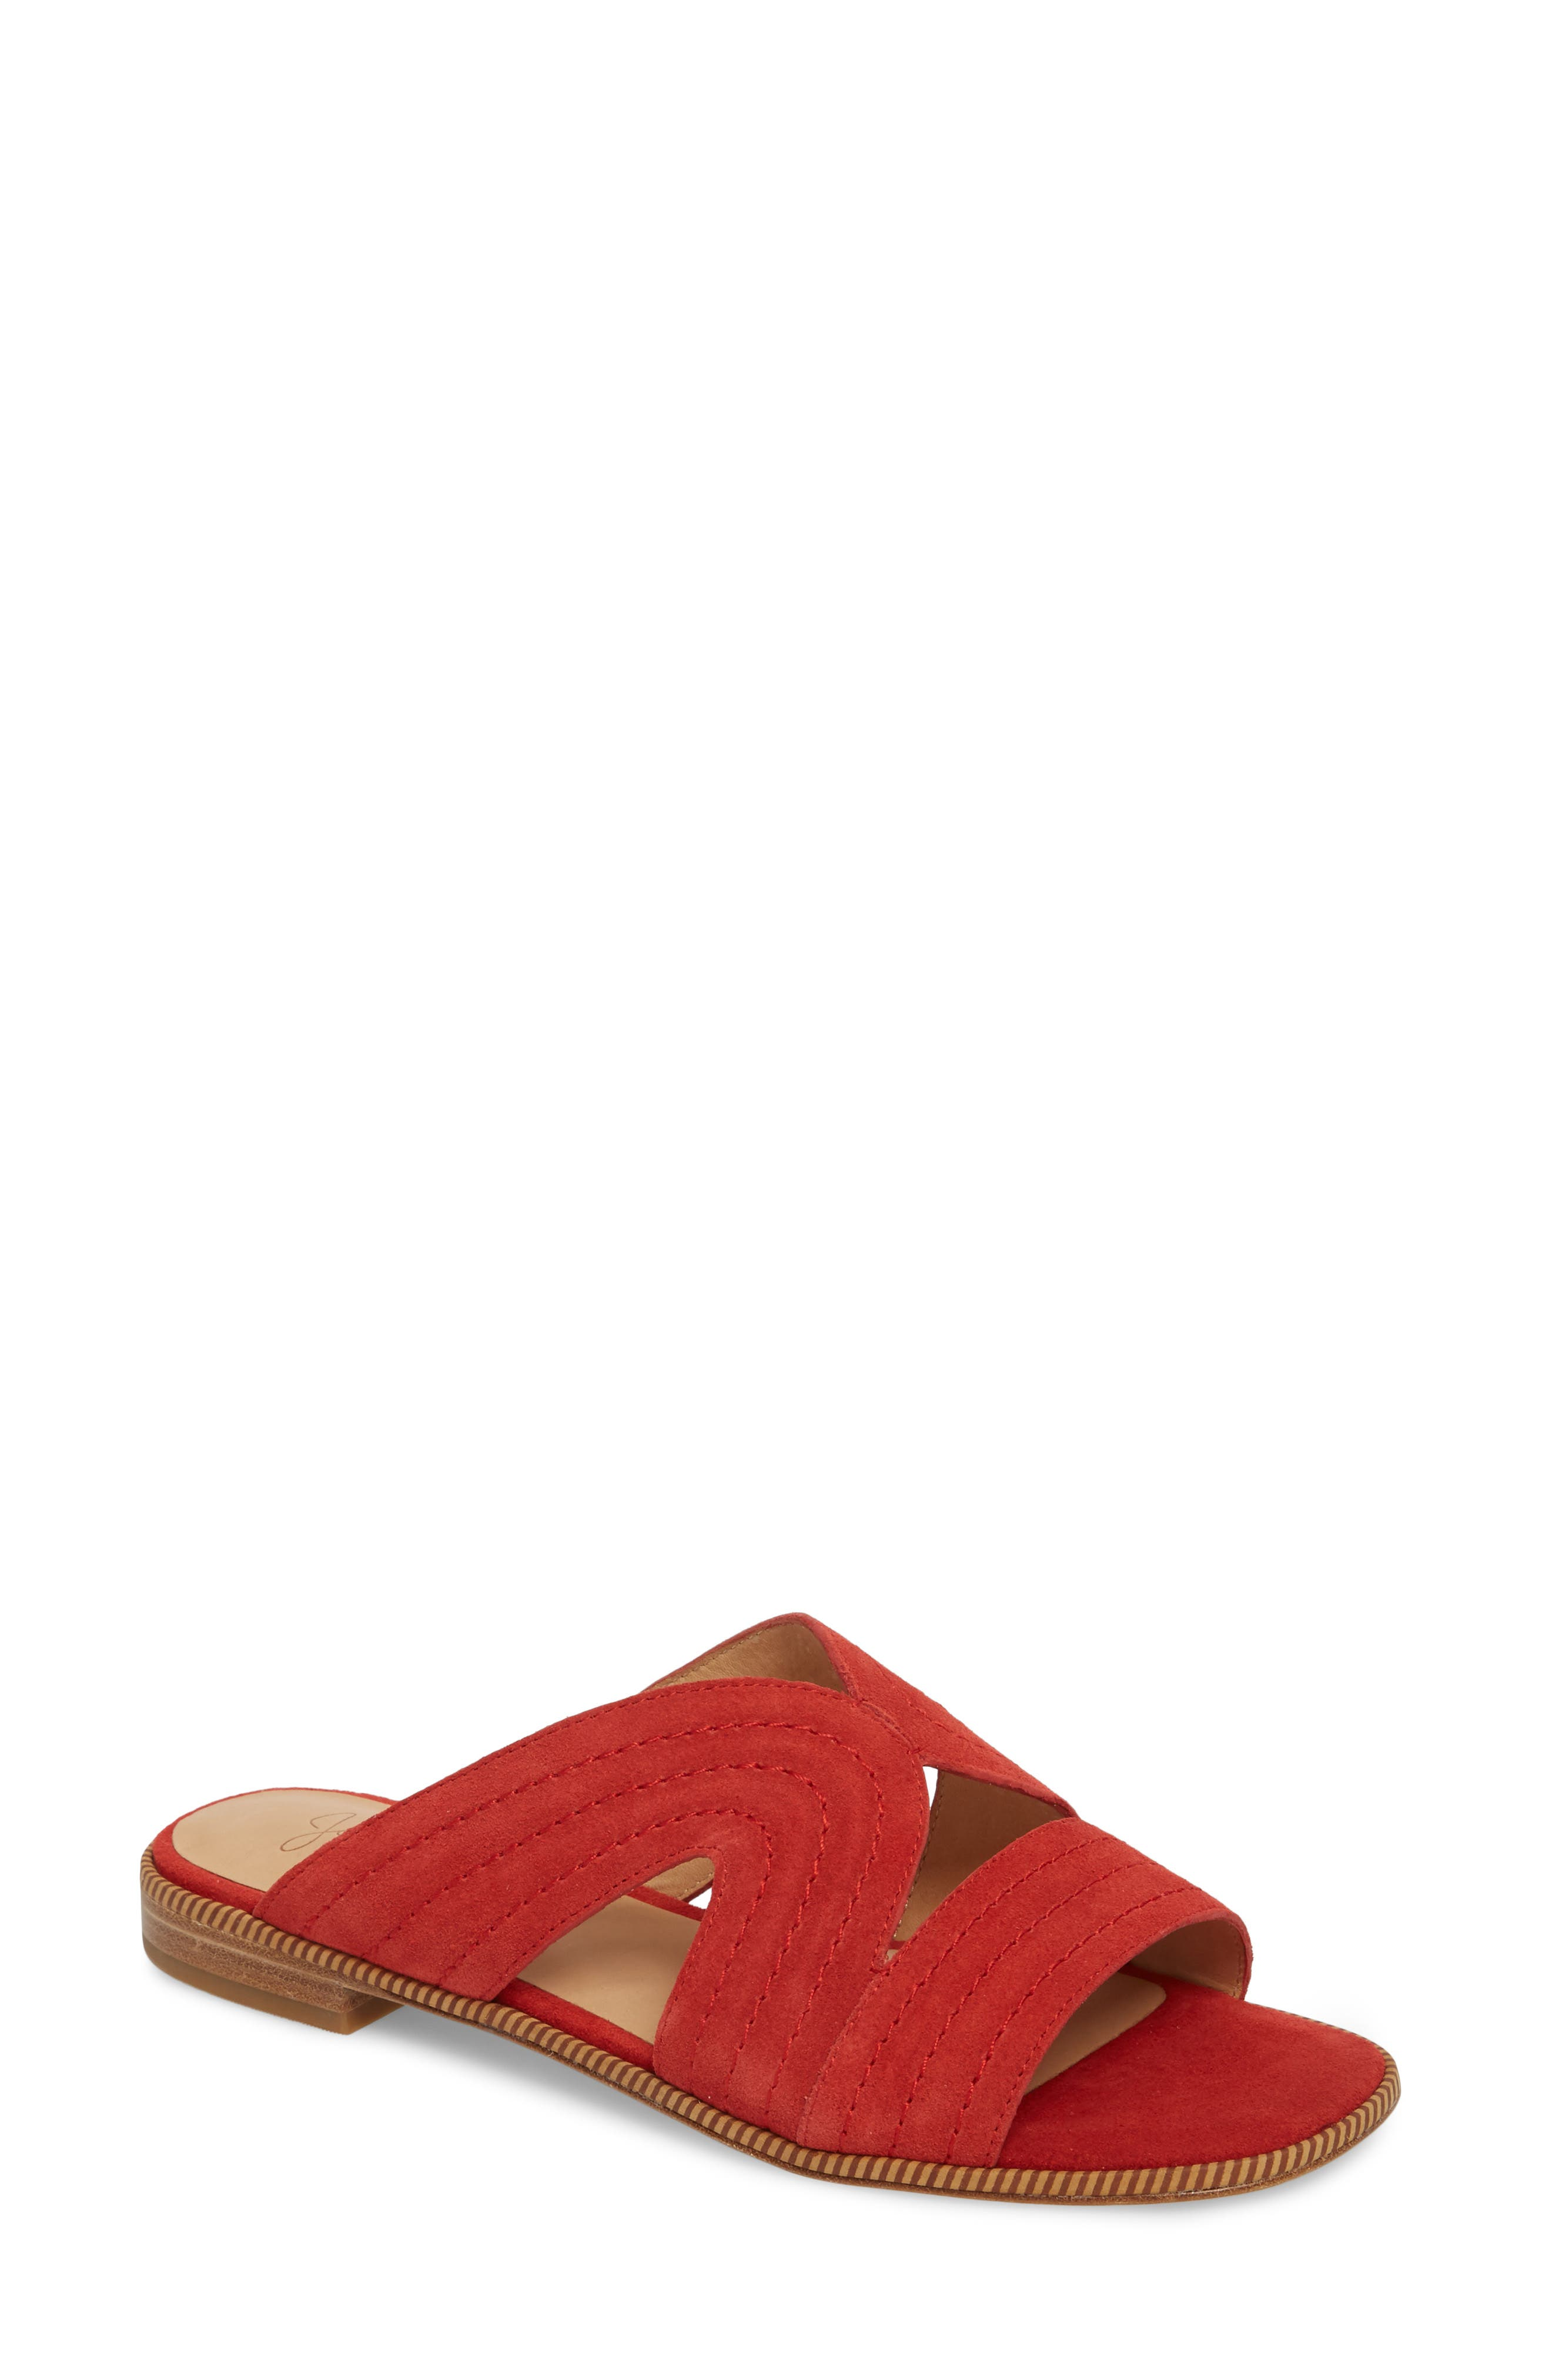 Paetyn Slide Sandal,                         Main,                         color, Red